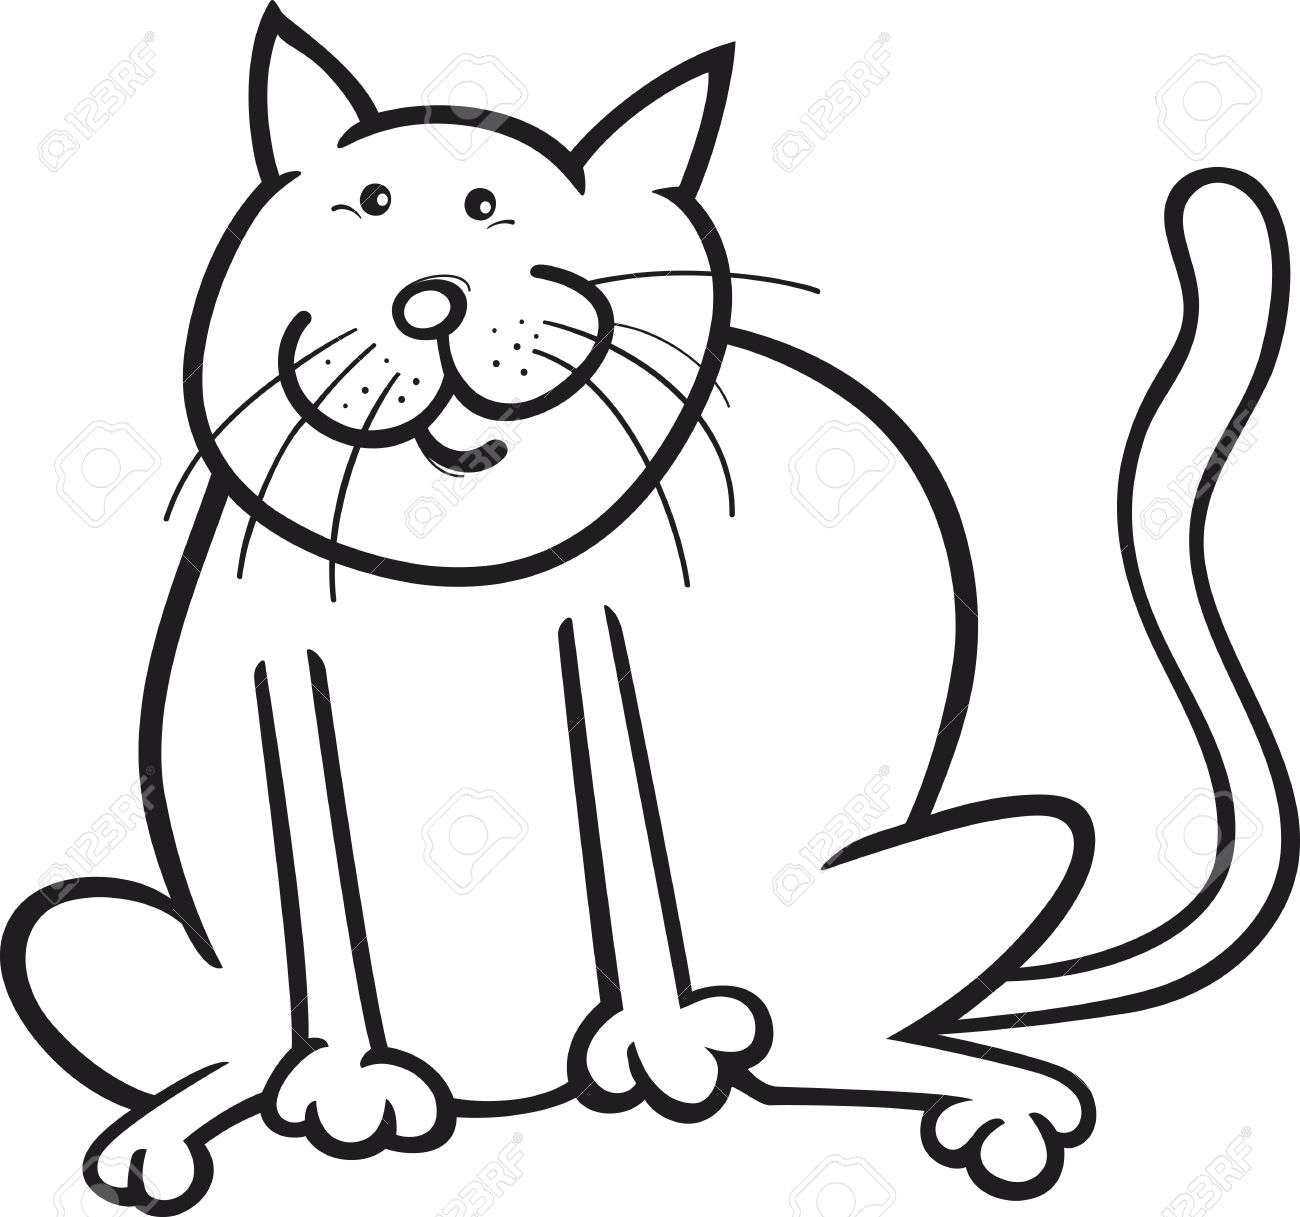 fat cat silhouette at getdrawings com free for personal use fat rh getdrawings com fat cat clip art free fat cat on mat clipart